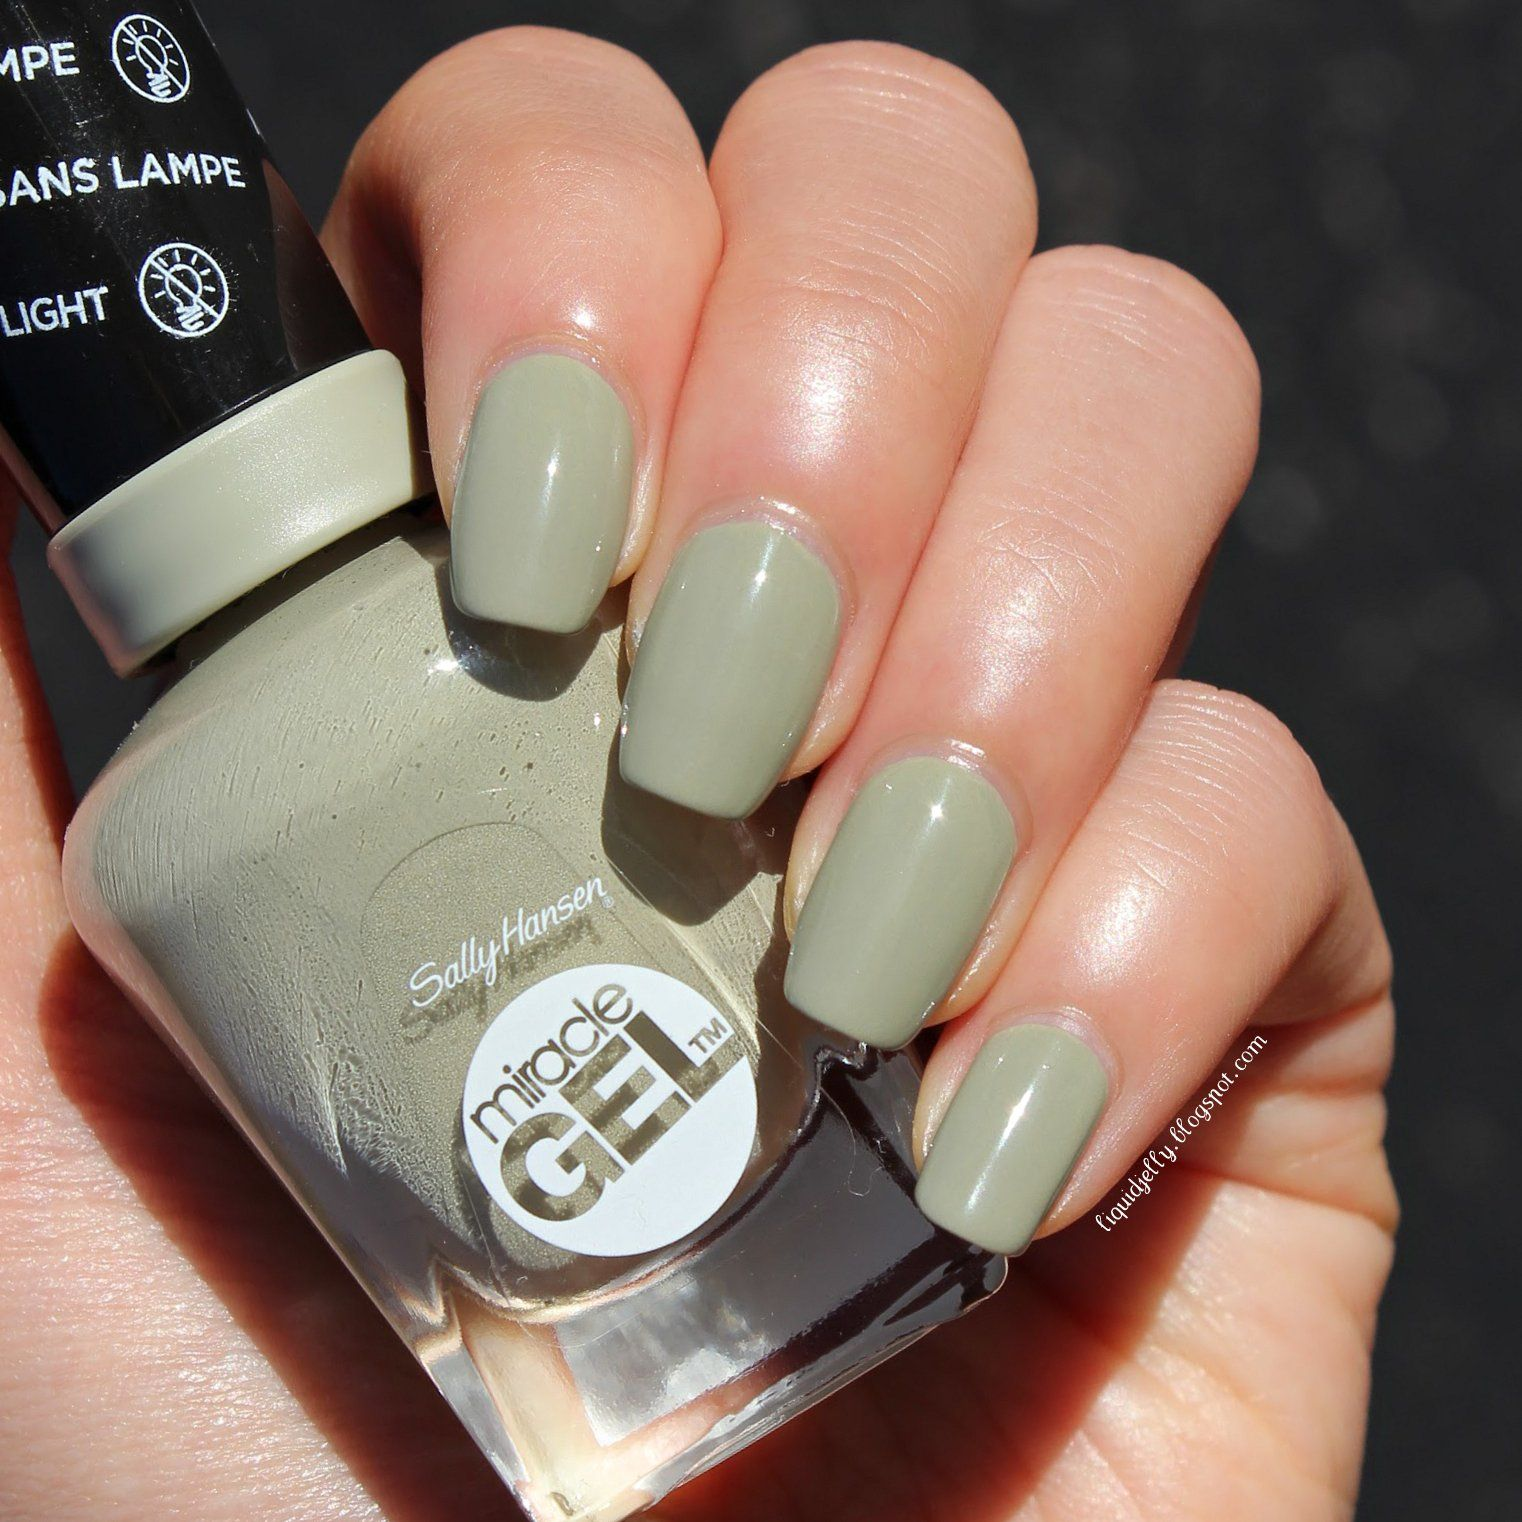 Queen Gel Nail Polish: Camo Queen, 2 Coats: Light Olive-grey Creme, Sally Hansen